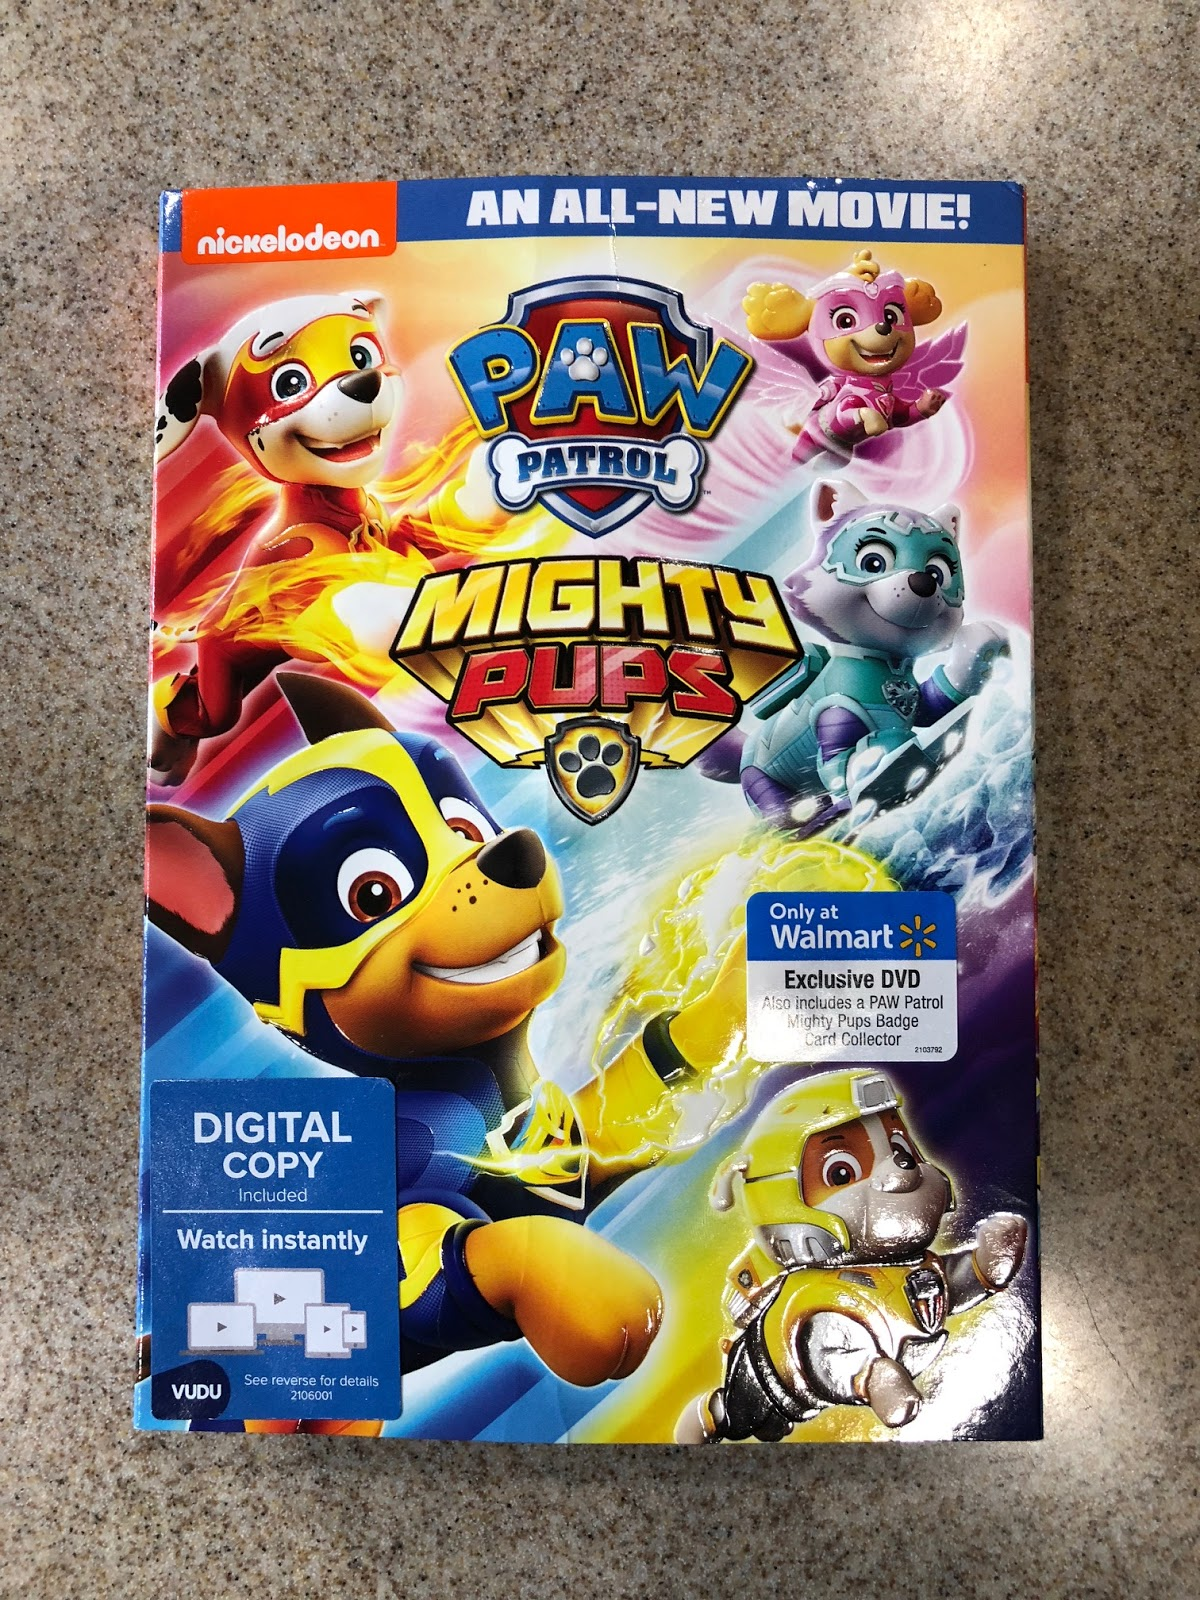 Hawaii Mom Blog: Review - Paw Patrol: Mighty Pups Available